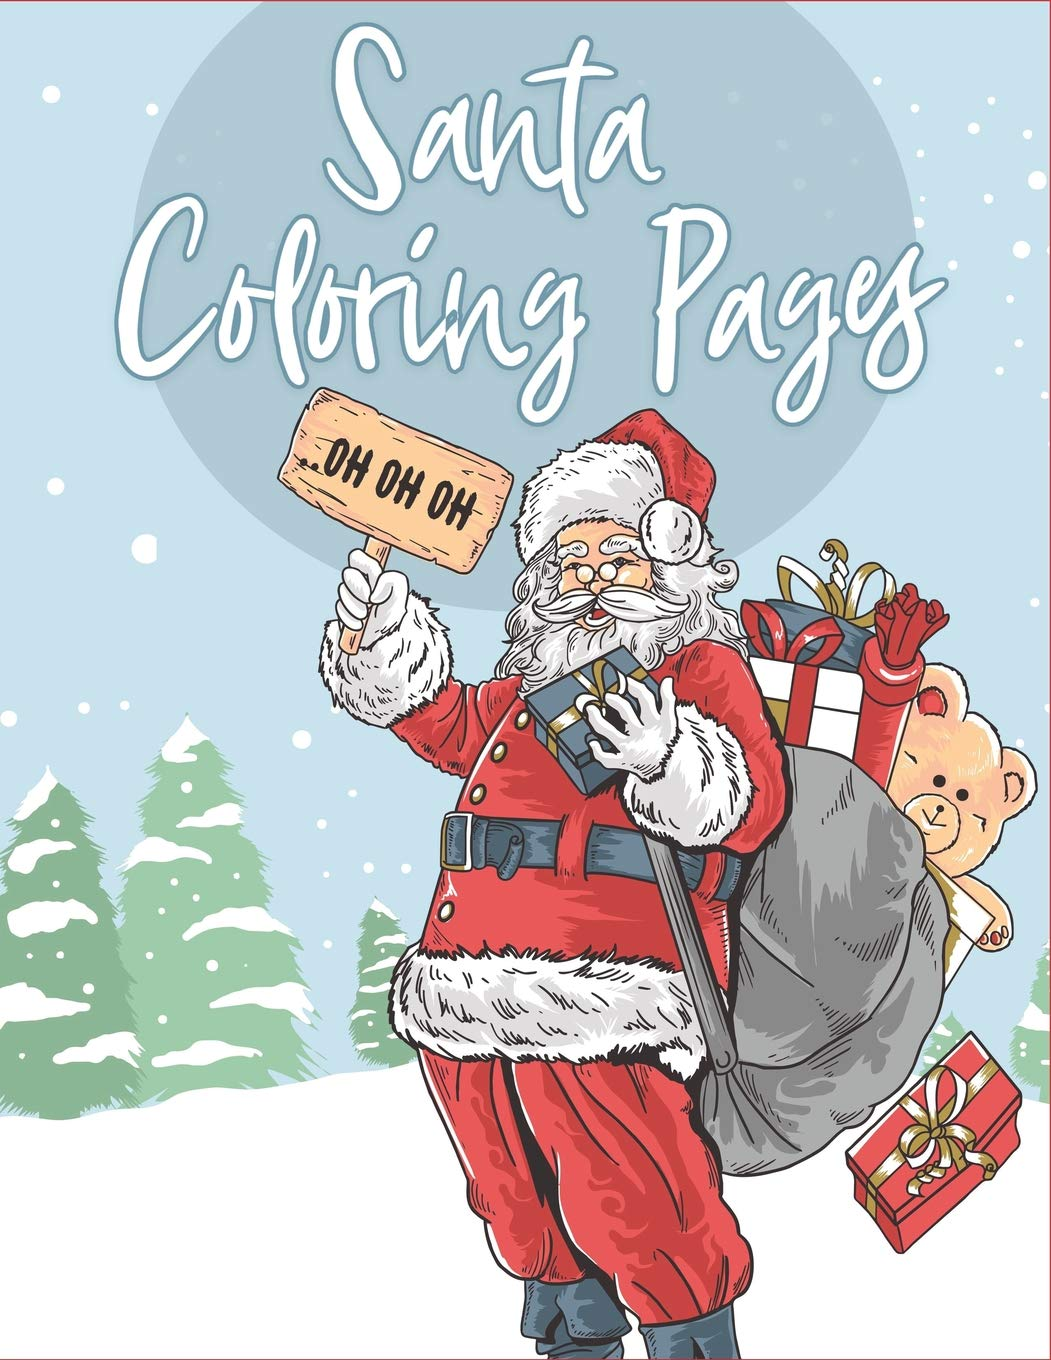 Buy Santa Coloring Pages 70 Christmas Coloring Books For Kids With Reindeer Snowman Christmas Trees Santa Claus And More Book Online At Low Prices In India Santa Coloring Pages 70 Christmas